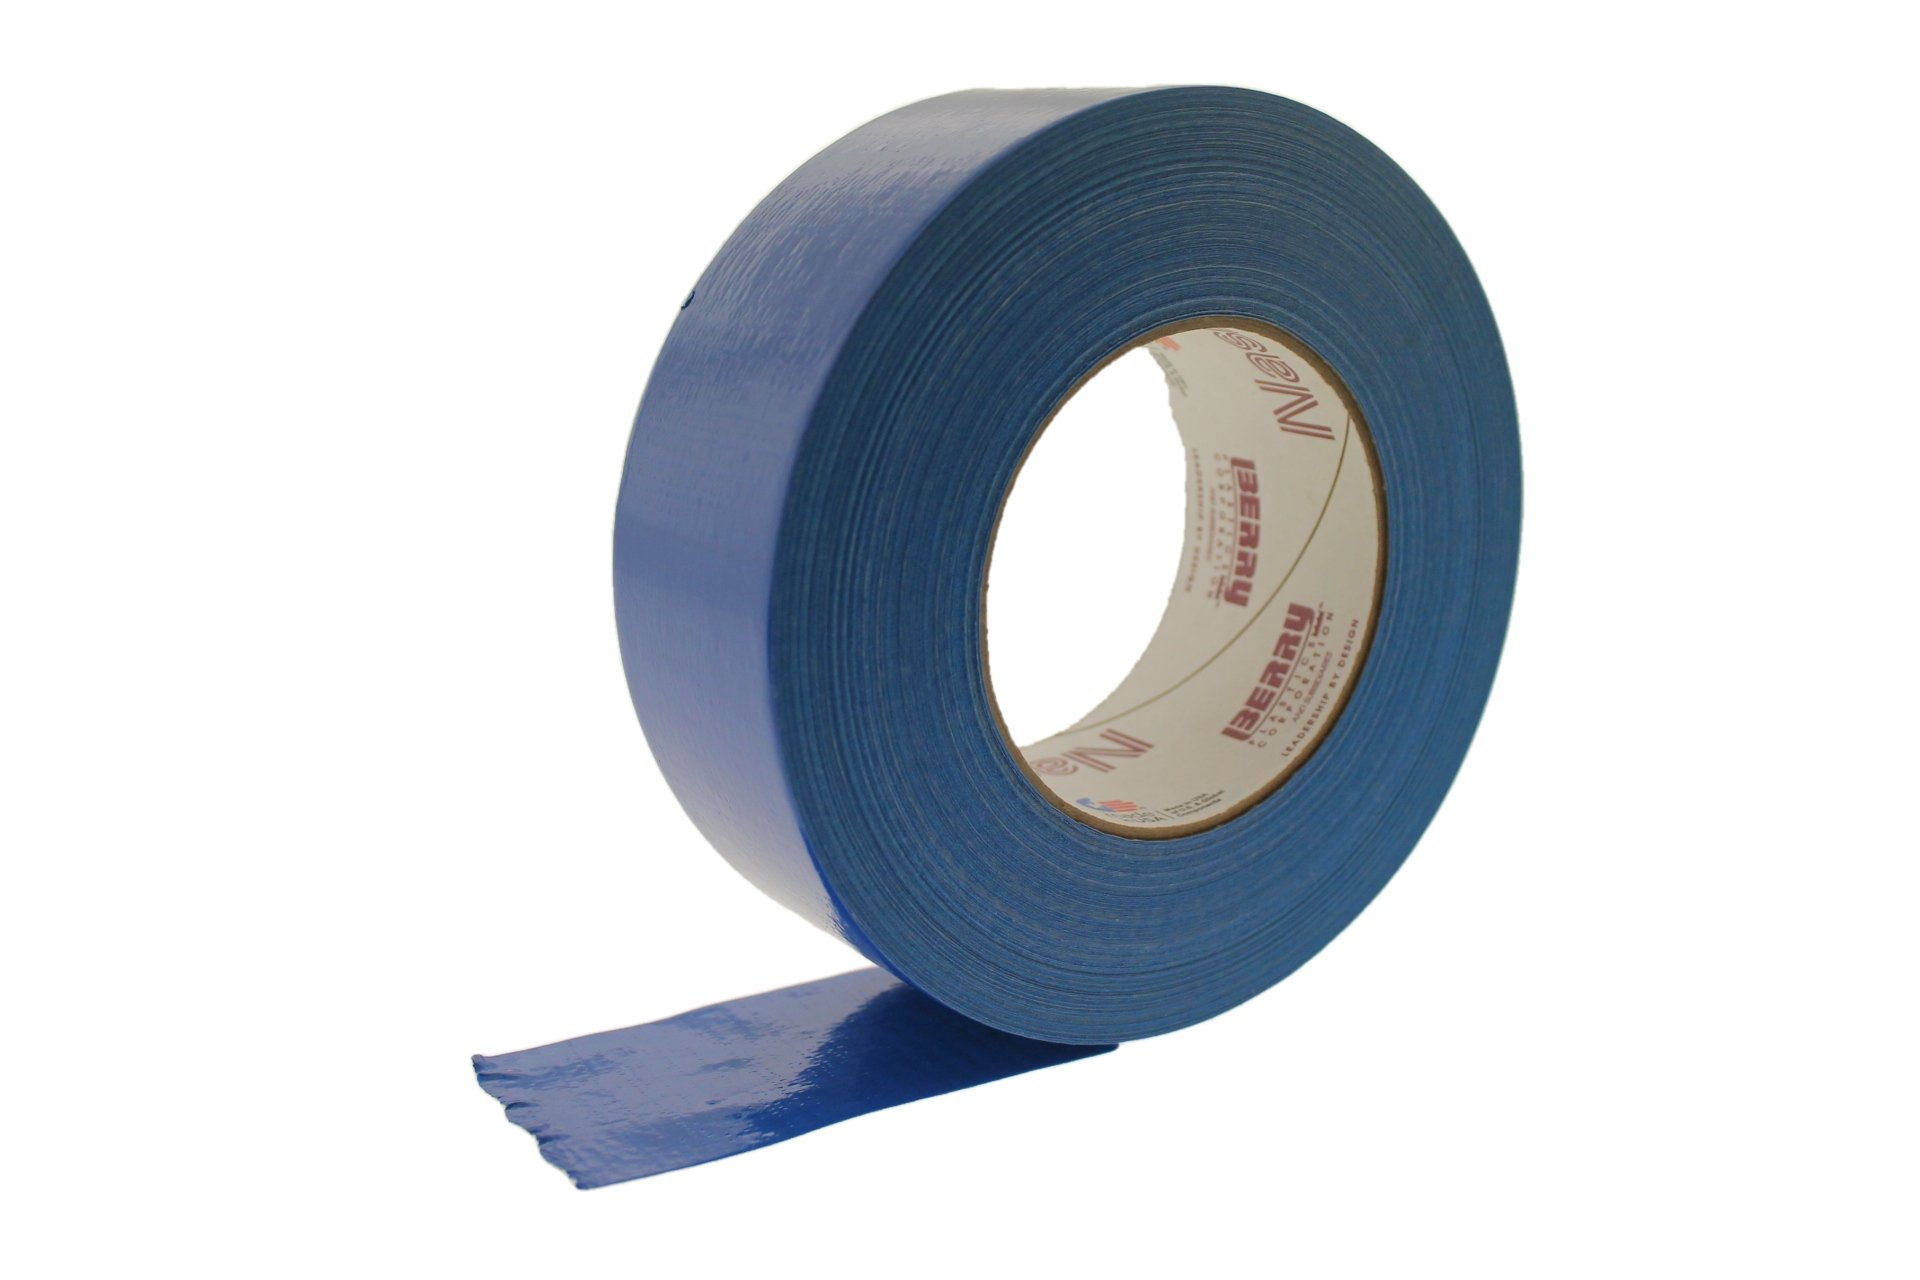 Nashua 2280 2'' Blue 9 Mil Cloth Duct Tape Waterproof Hand Tearable UV Resistant High Visibility Industrial Grade Heavy Duty Pro Colored Duct Tape Colors USA Made 60yd